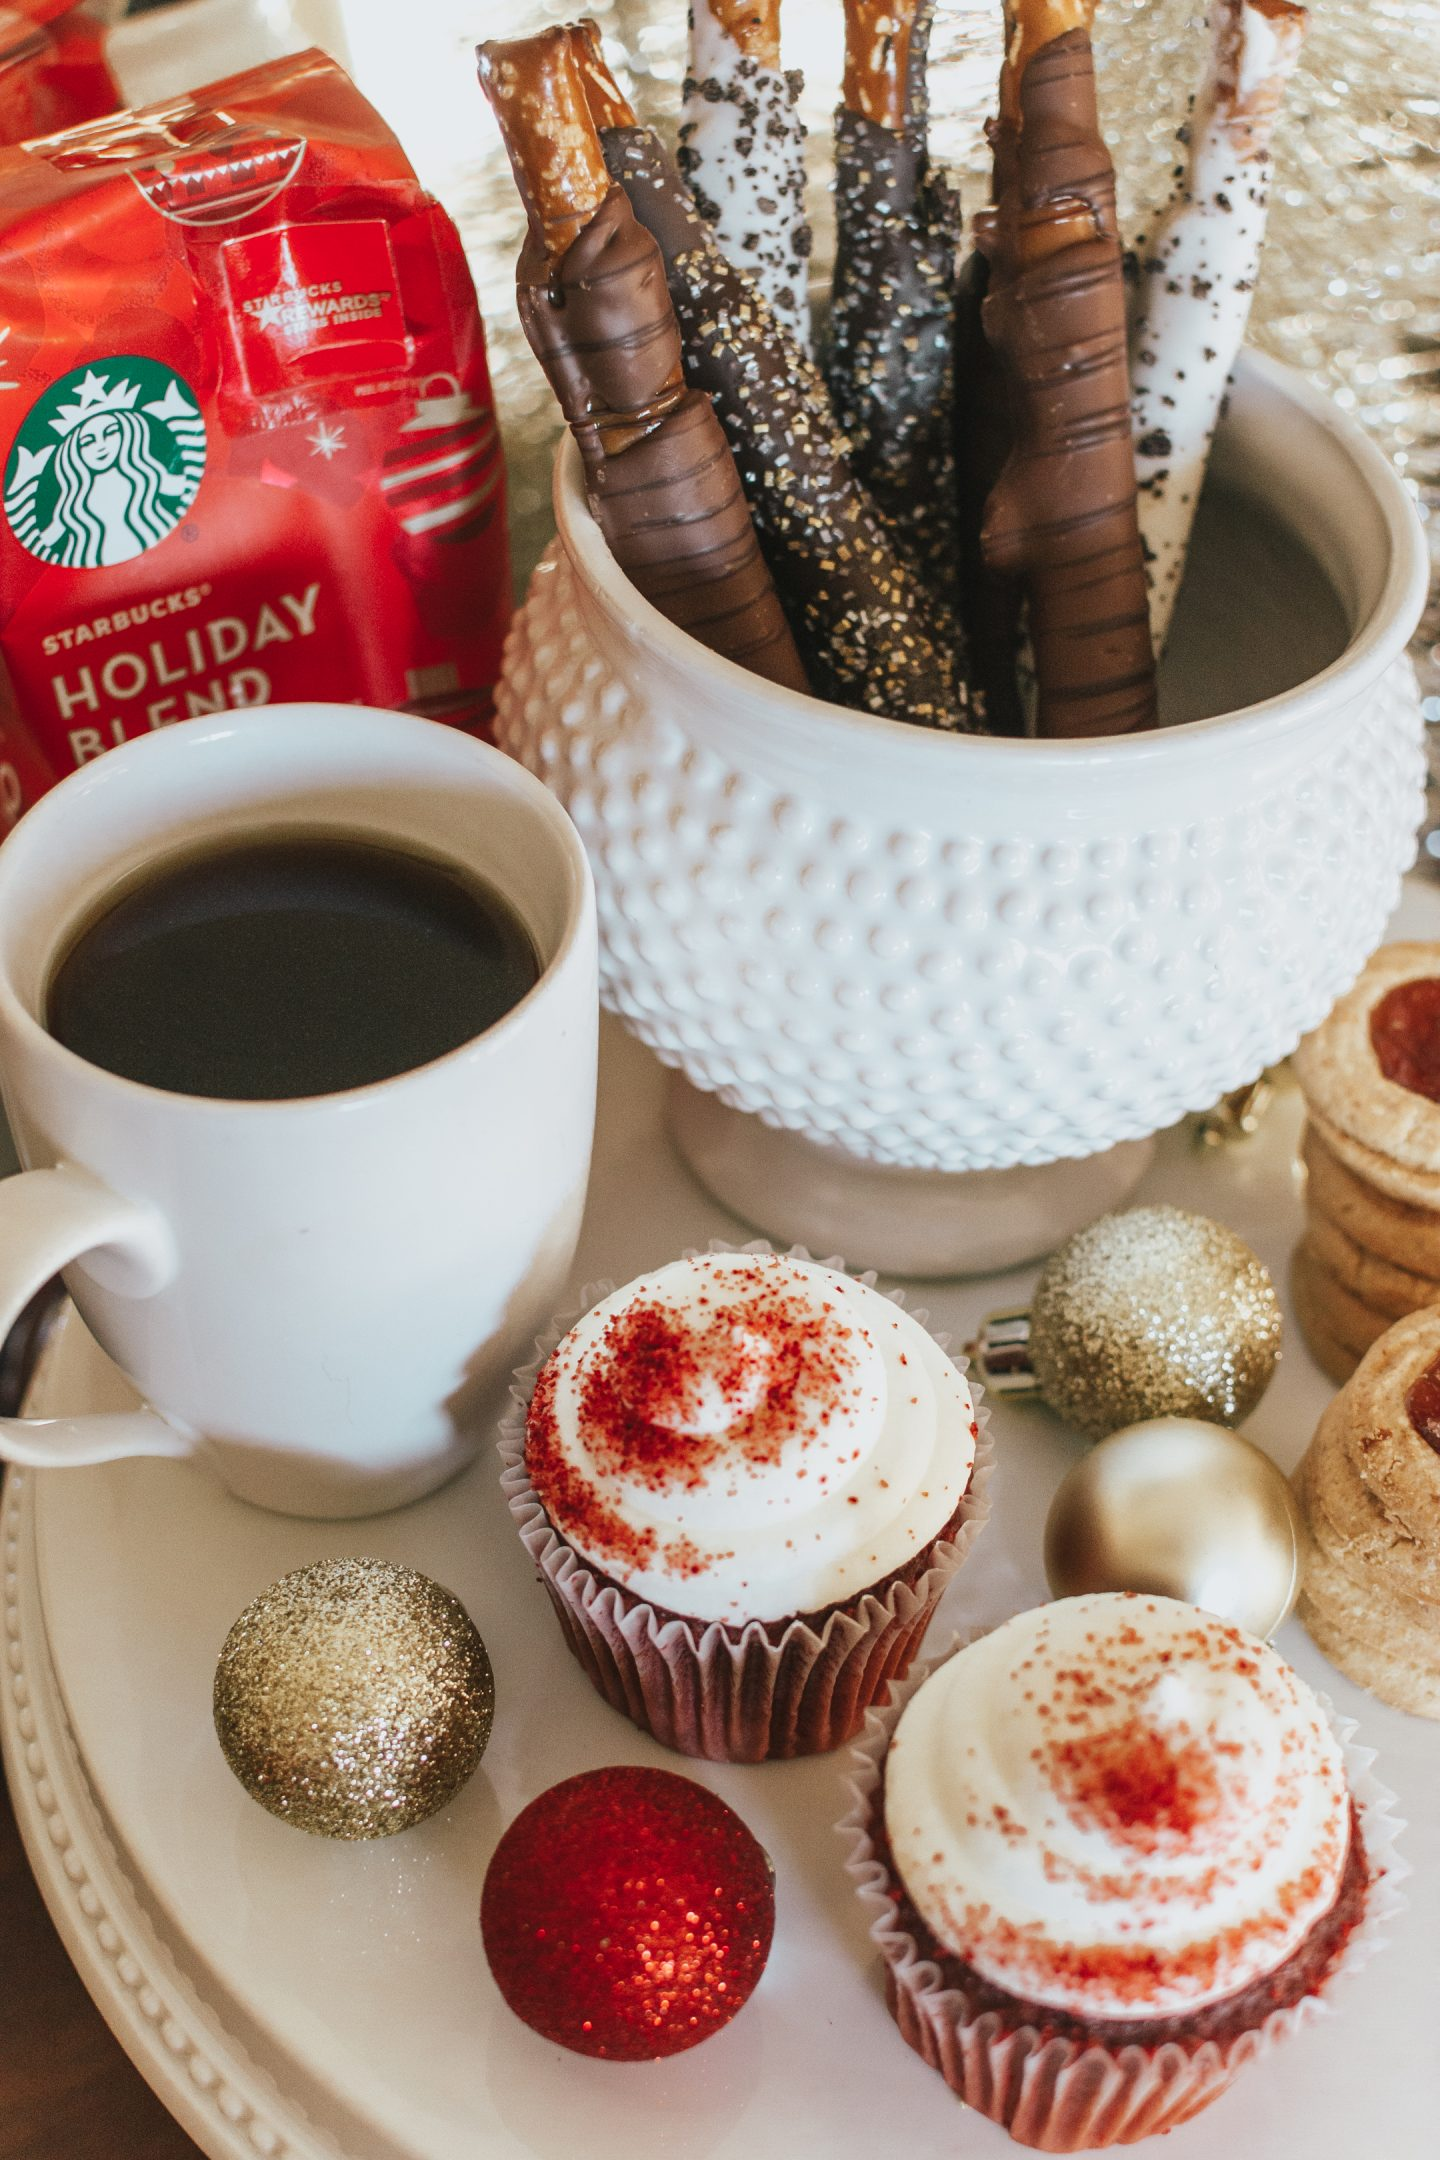 Starbucks Holiday Blend, Entertaining During the Holidays, holiday themed coffee station, holiday coffee and dessert pairings